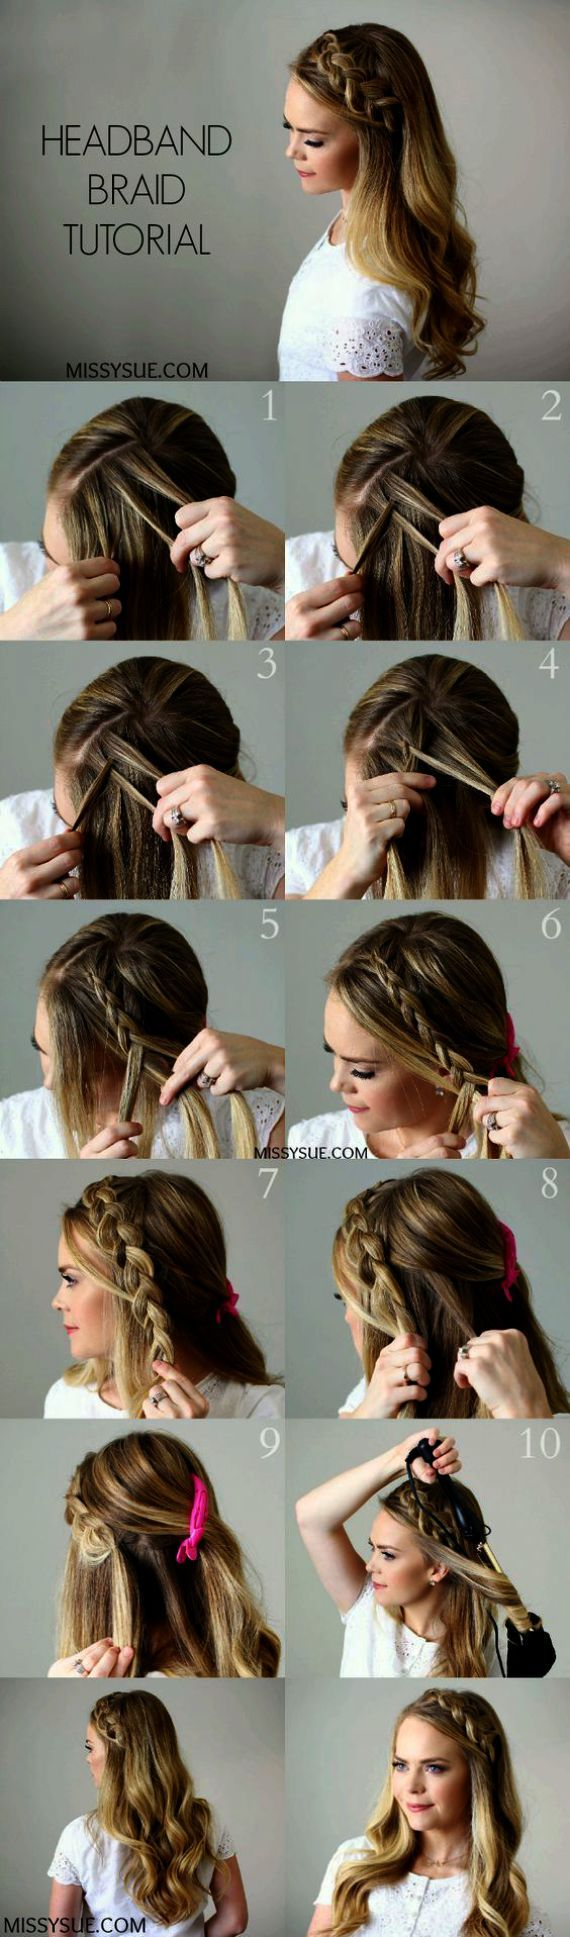 Gold Hair Cuffs For Braids Near Me around Black Hair Braids Styles 2019 versus Hair Braids Dubai amid Haircut And Color